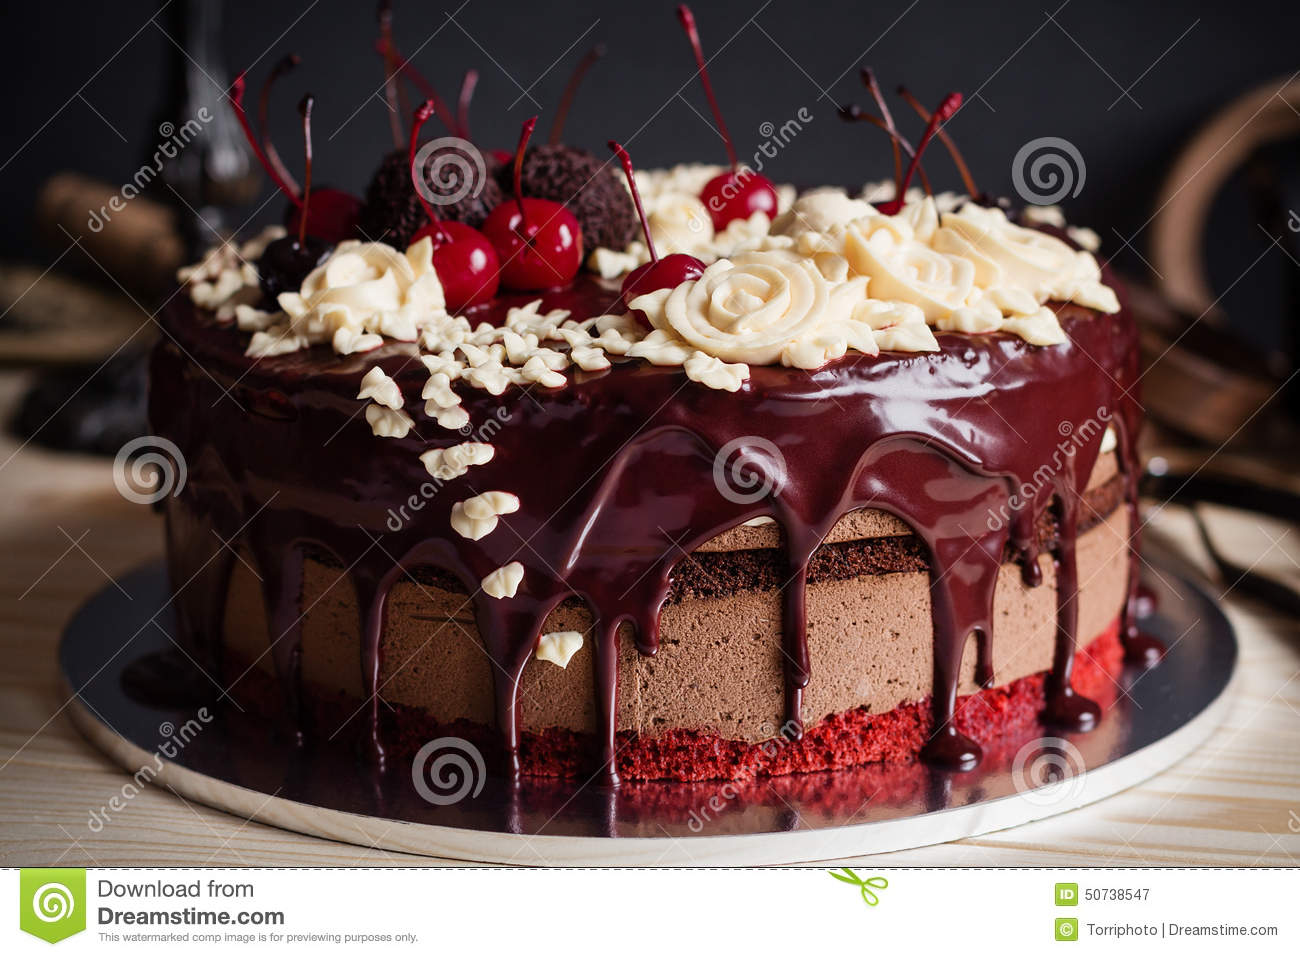 How Decorate Cake At Home : Layer Cake Decorated With Chocolate Glaze, Cream Flowers And Che Stock Photo - Image: 50738547